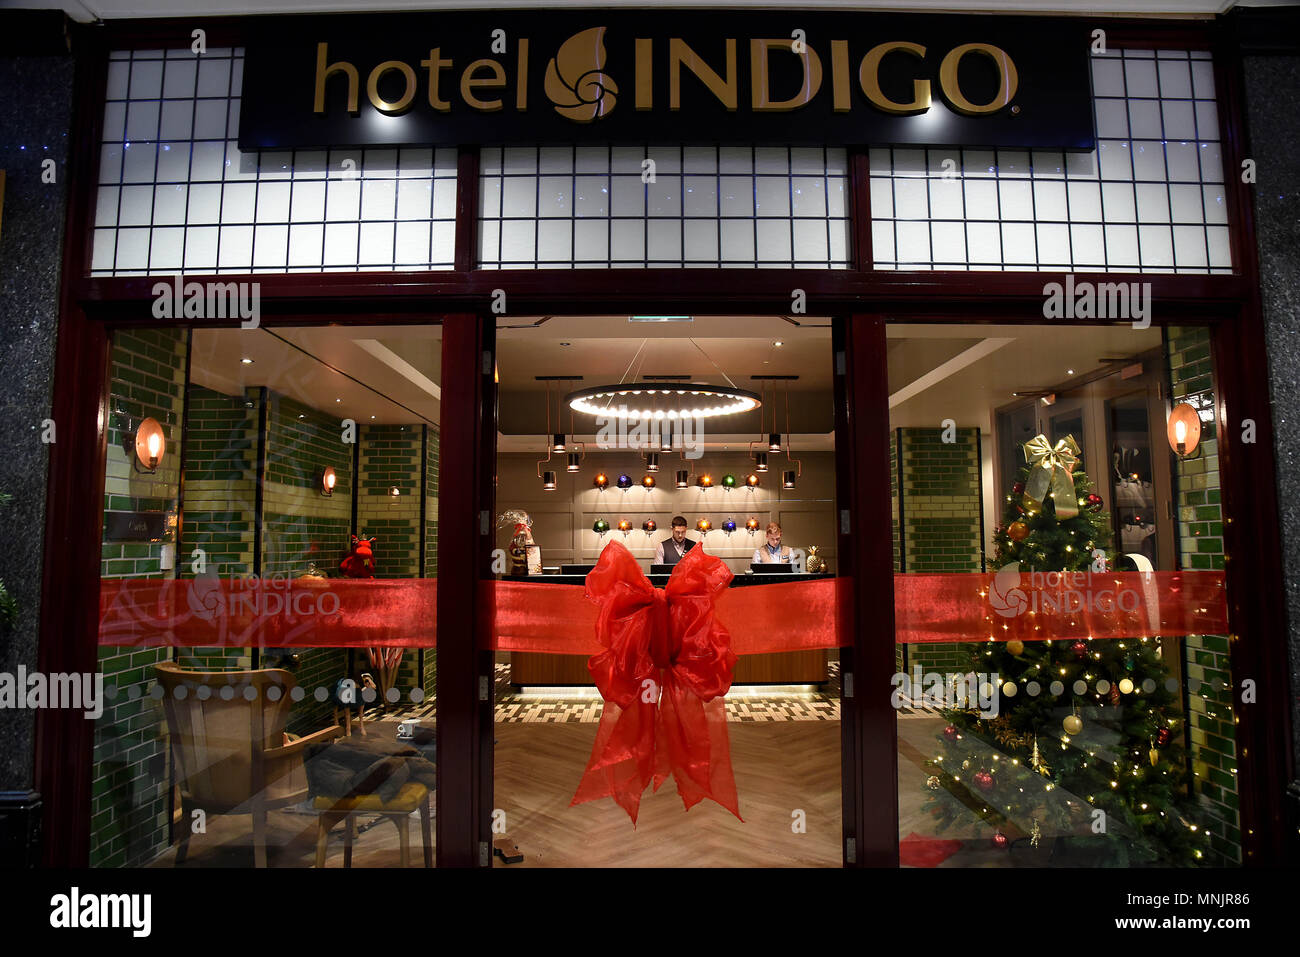 Hotel Indigo Cardiff, Dominions Arcade, Cardiff. An IHG Hotel. Pictures show interiors design and  exteriors - Stock Image